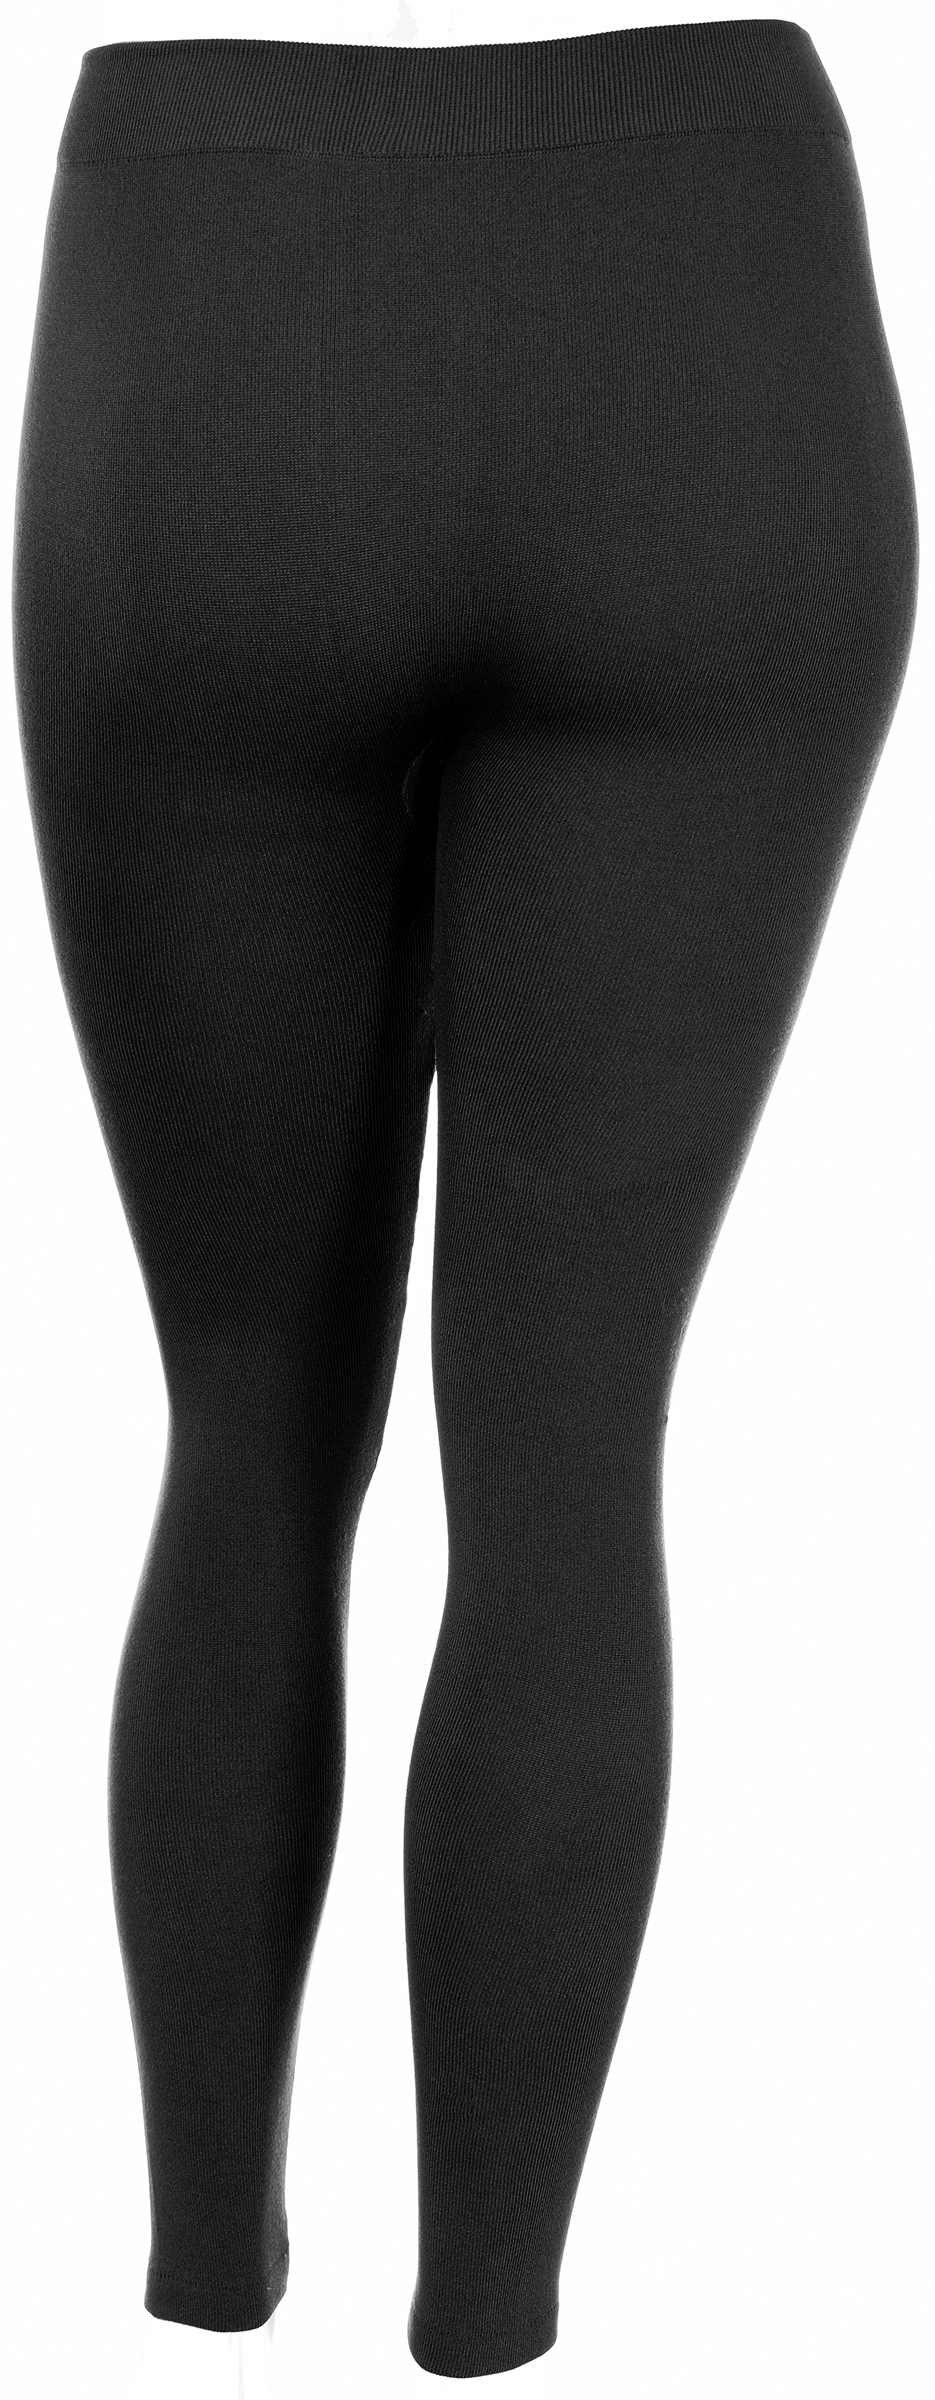 Womens Plus Size Fleece Lined Leggings Luxuriously Soft Silky Smooth 3 Pack